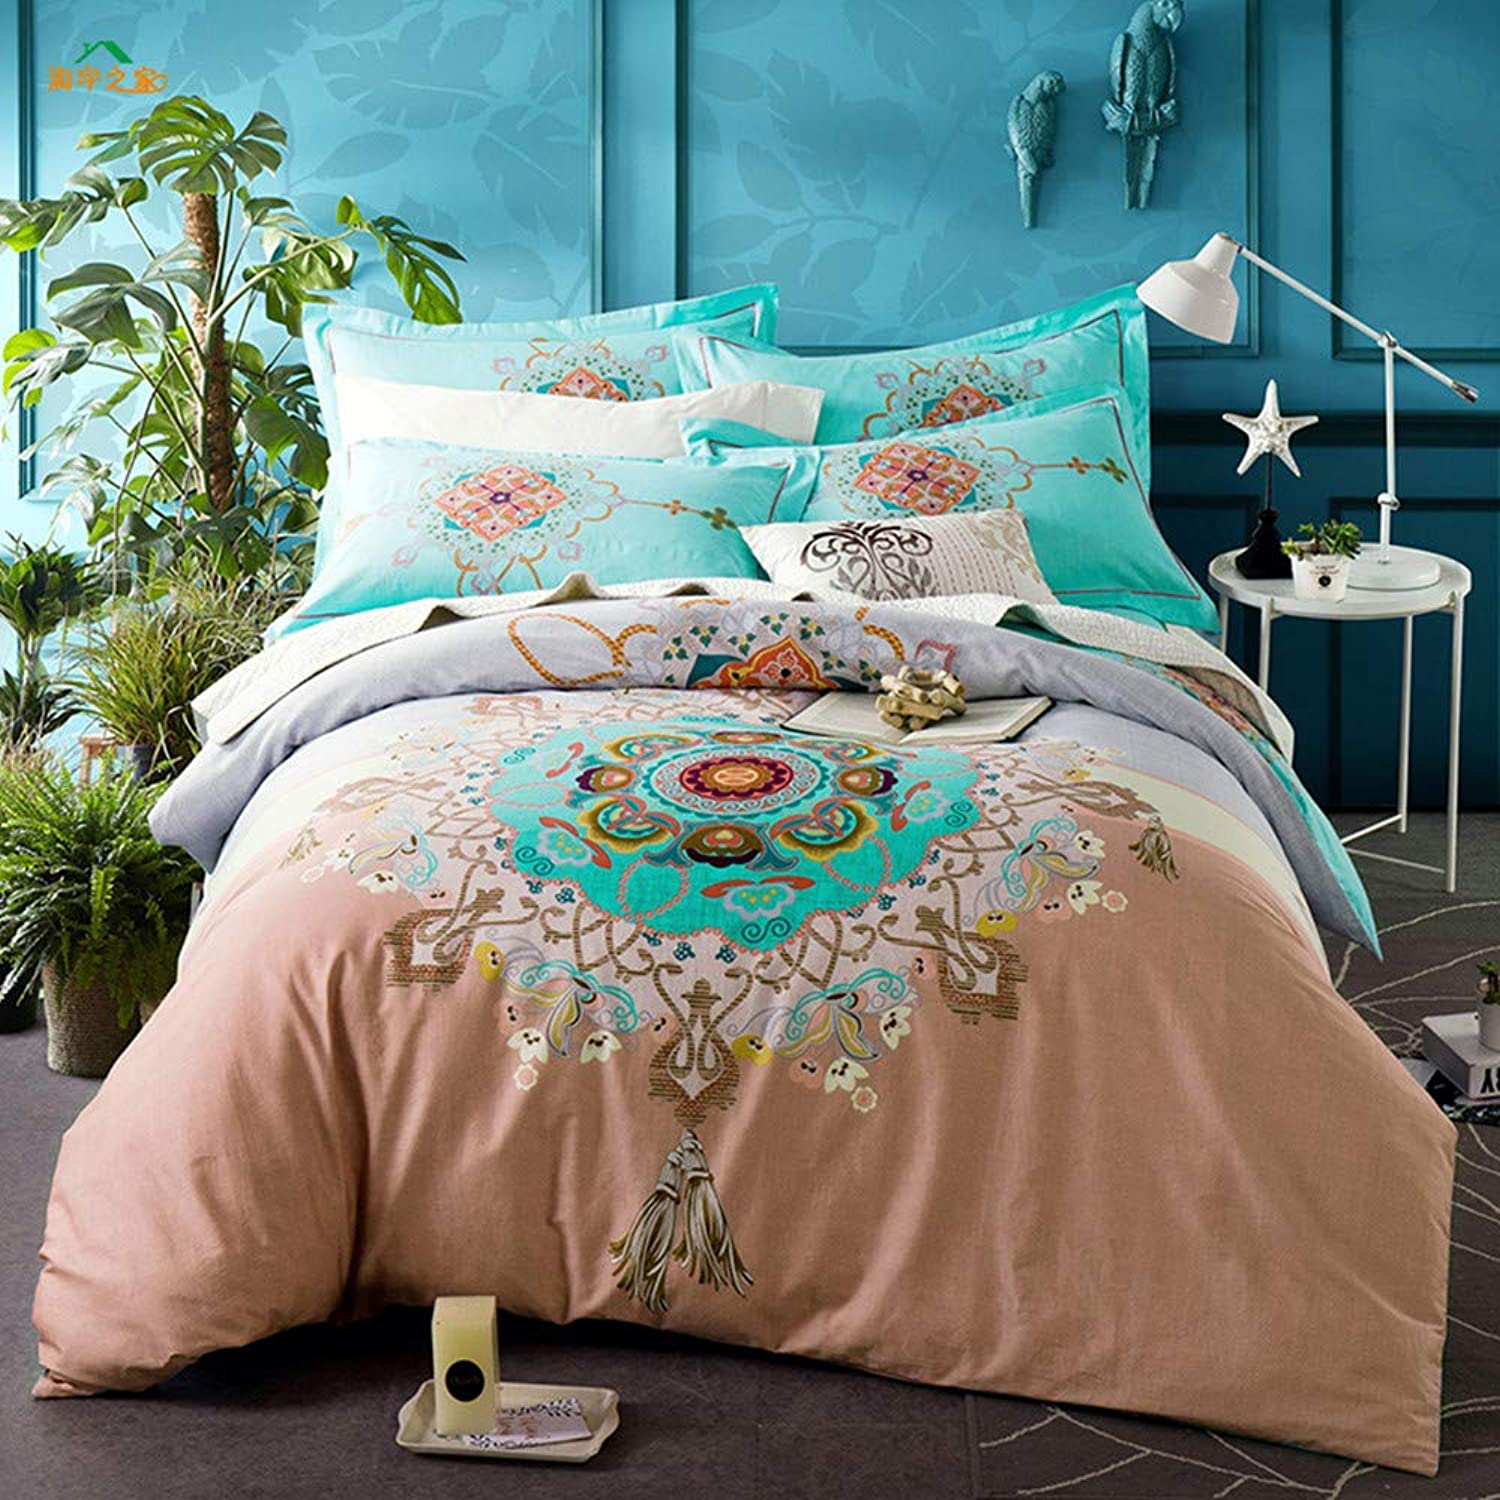 Abreeze Teal Shabby Floral Girls Duvet Cover Set Bohemian Bedding Set Full Size 4PCS